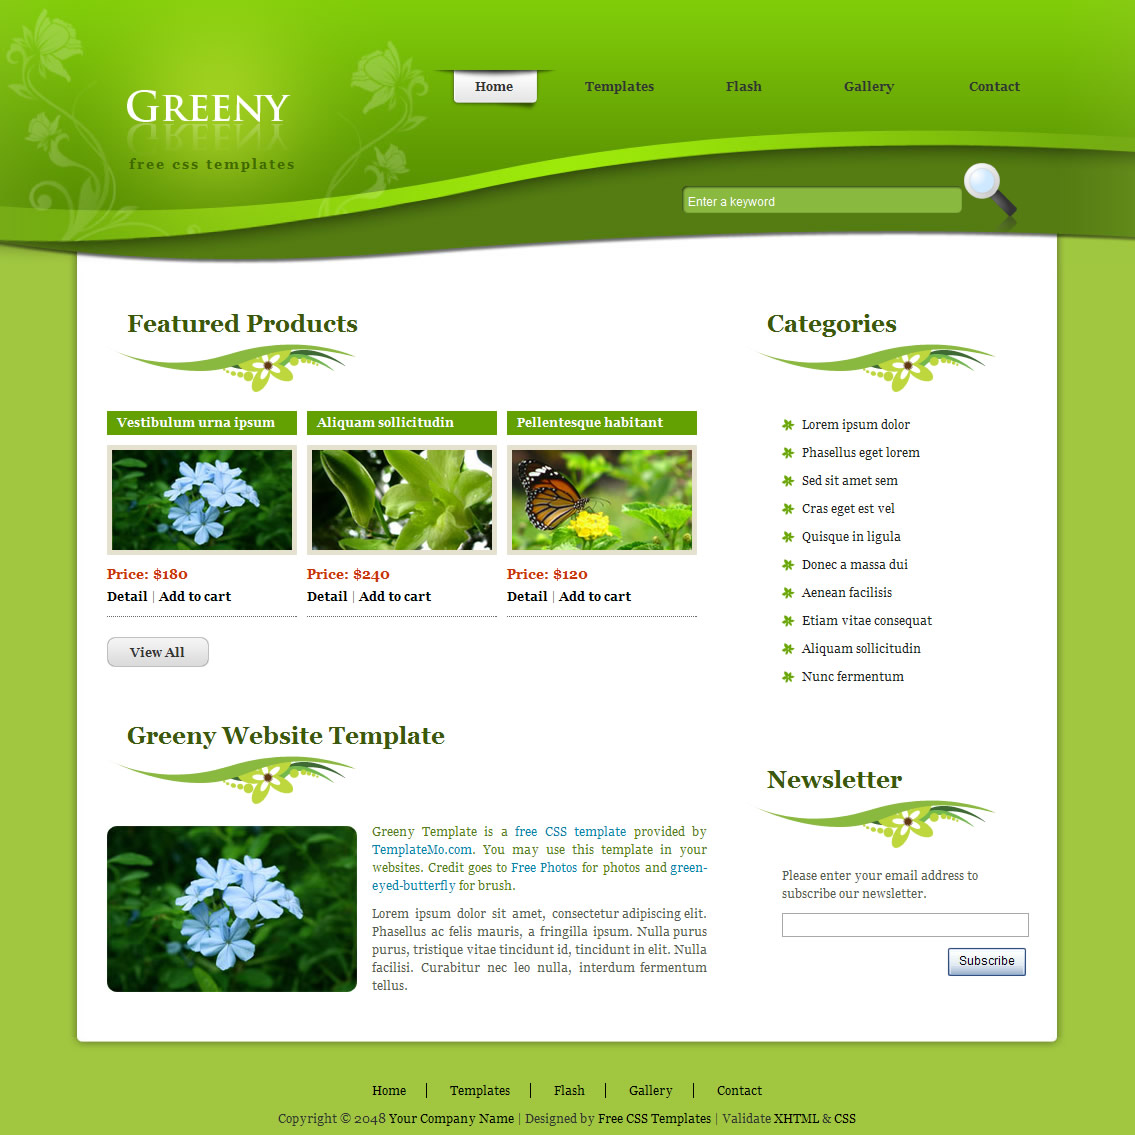 Free Flash Websites Template from templatemo.com